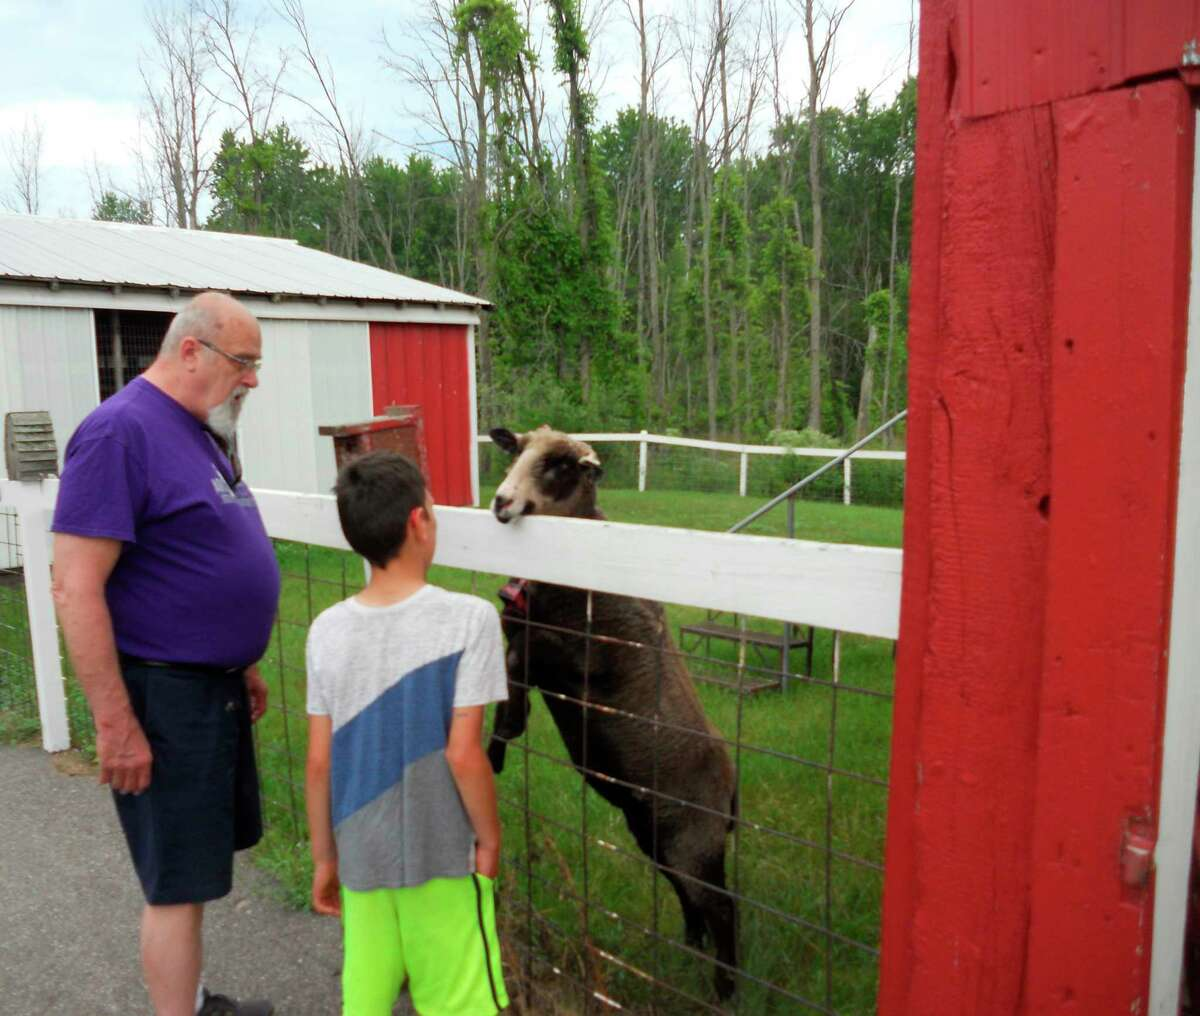 TheCircle Rocking S Children's Farm in Free Soil hosted a special needs summer camp day on Monday for theManistee ARC Summer Camp program.Participantshad the chance to seelive animals. (Courtesy photo)